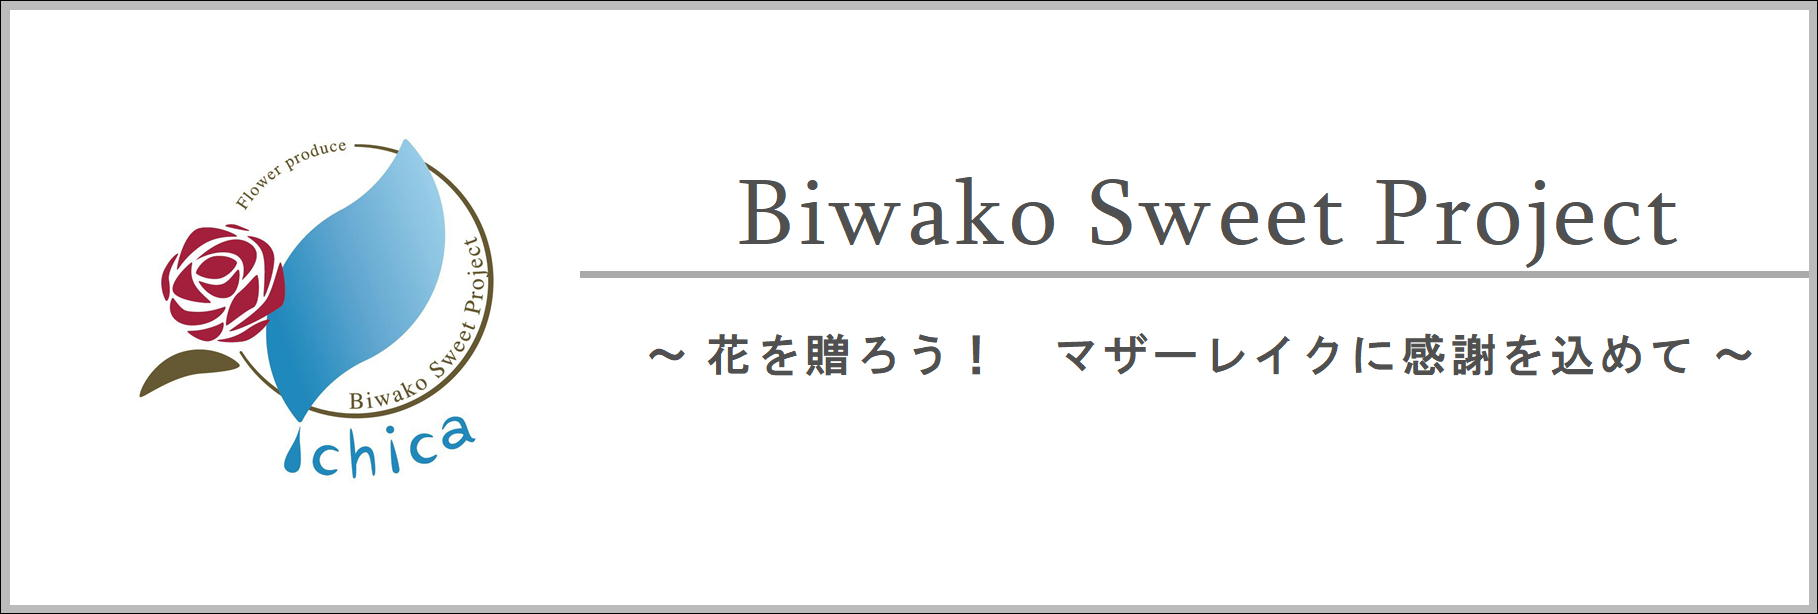 Biwako Sweet Project